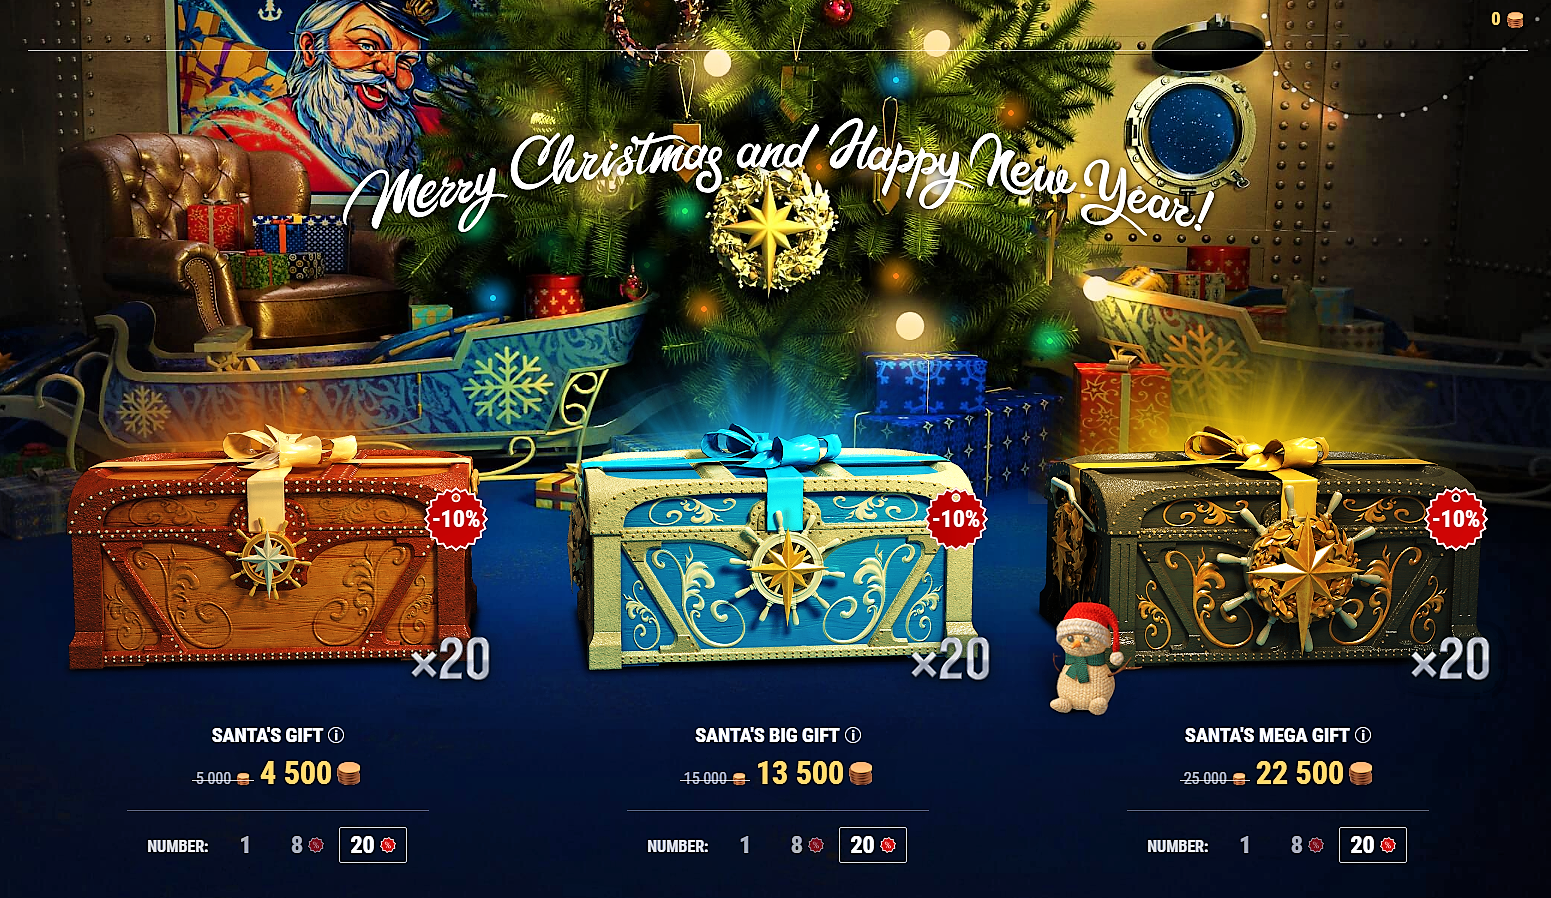 World Of Warships Christmas Containers 2020 Santa Containers 2020 plus 4 x Free